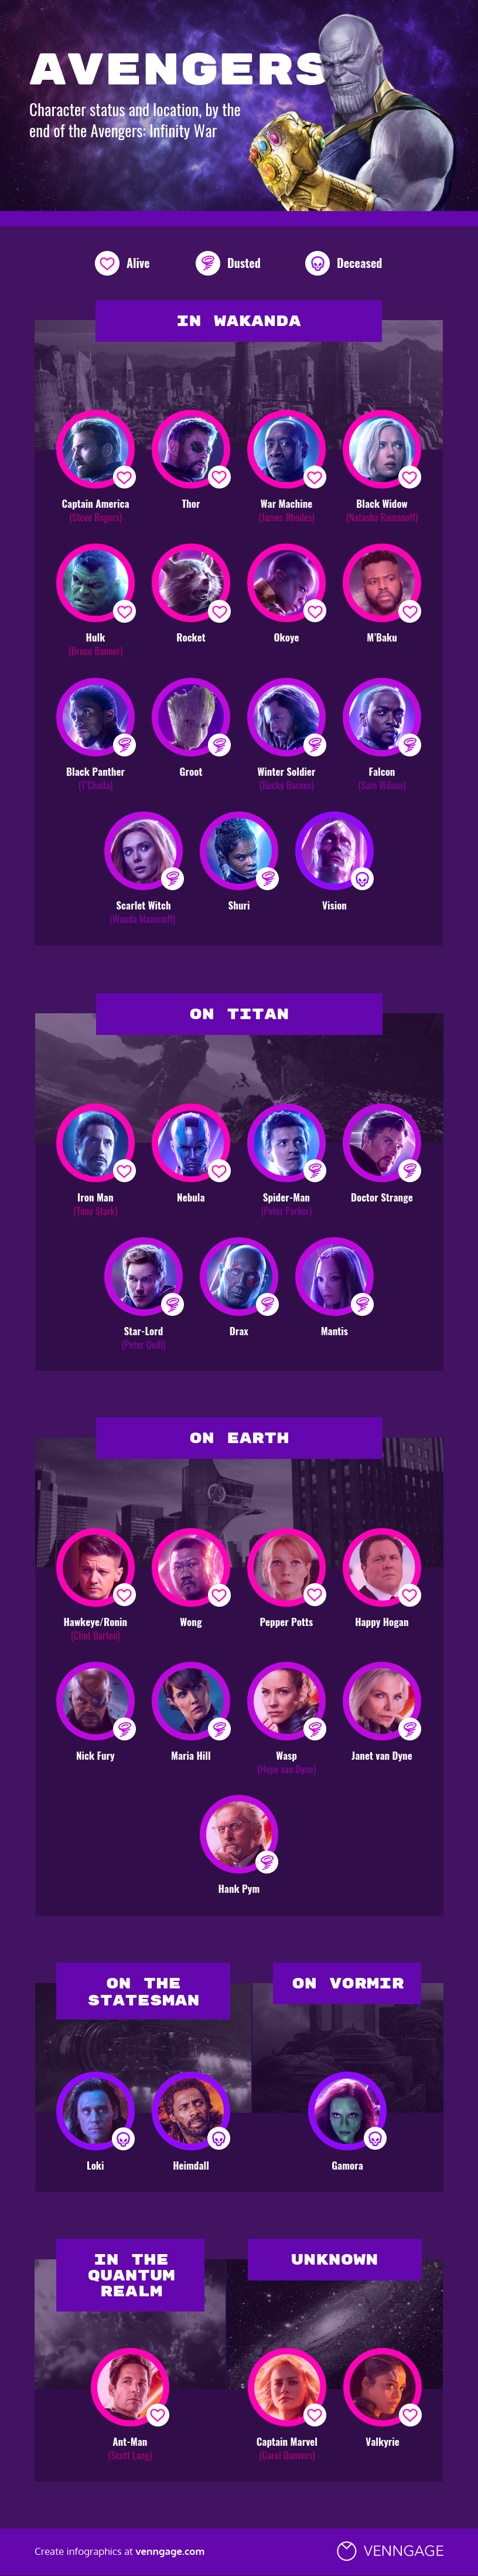 Avengers Endgame Character Location Infographic Venngage